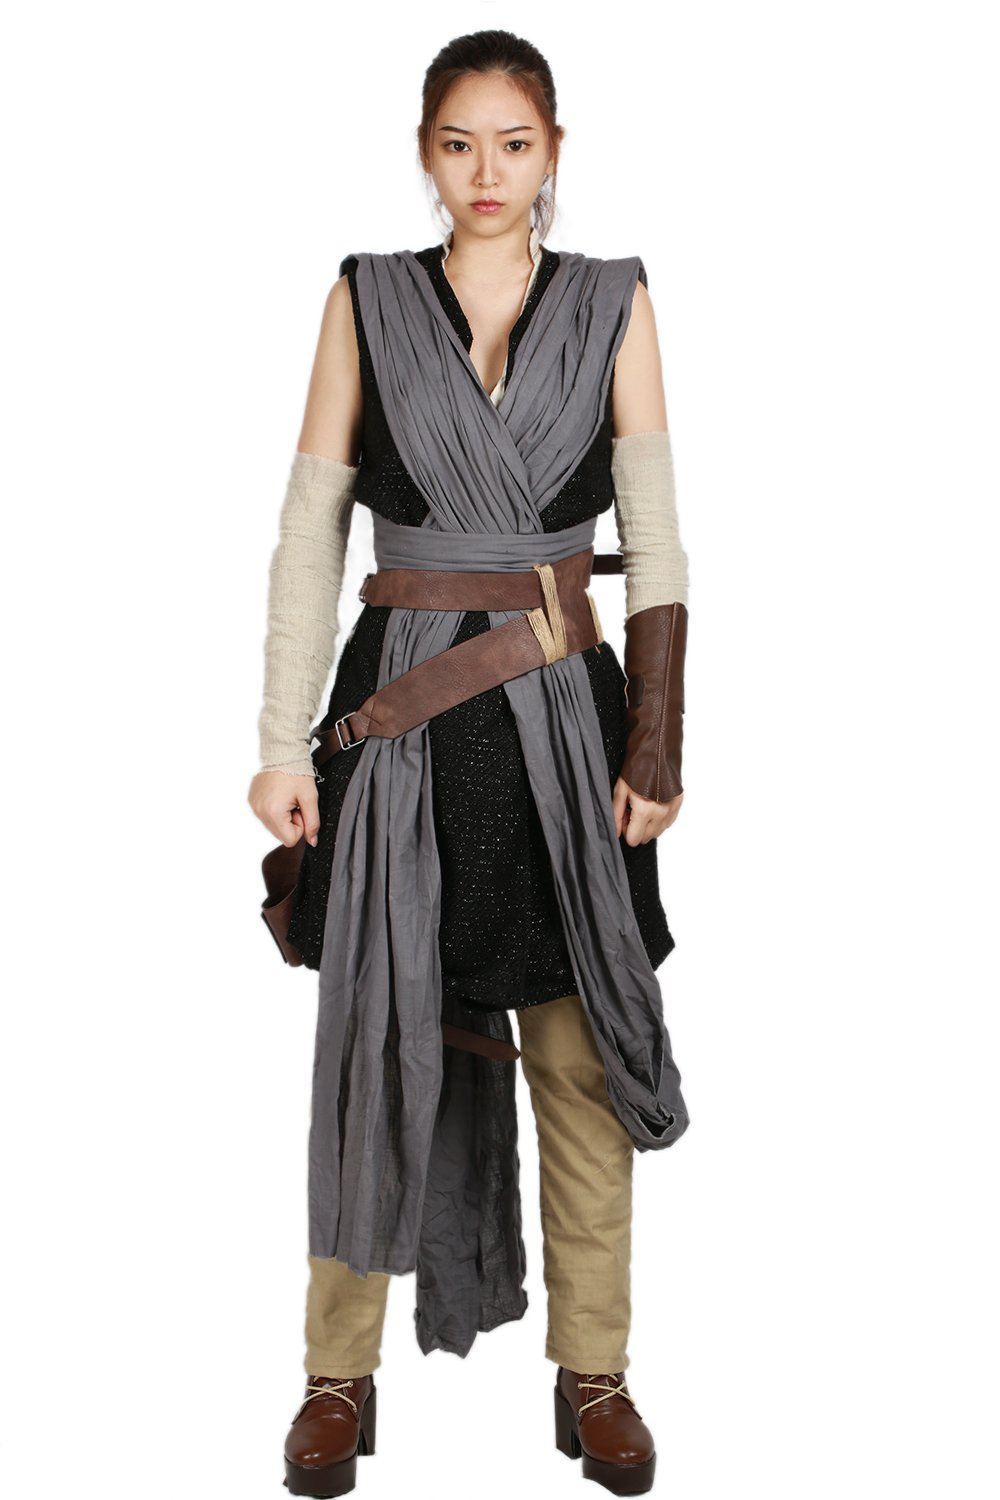 xcoser Deluxe Rey Costume Bag Belt Outfit Suit Cospaly accessories For Halloween L